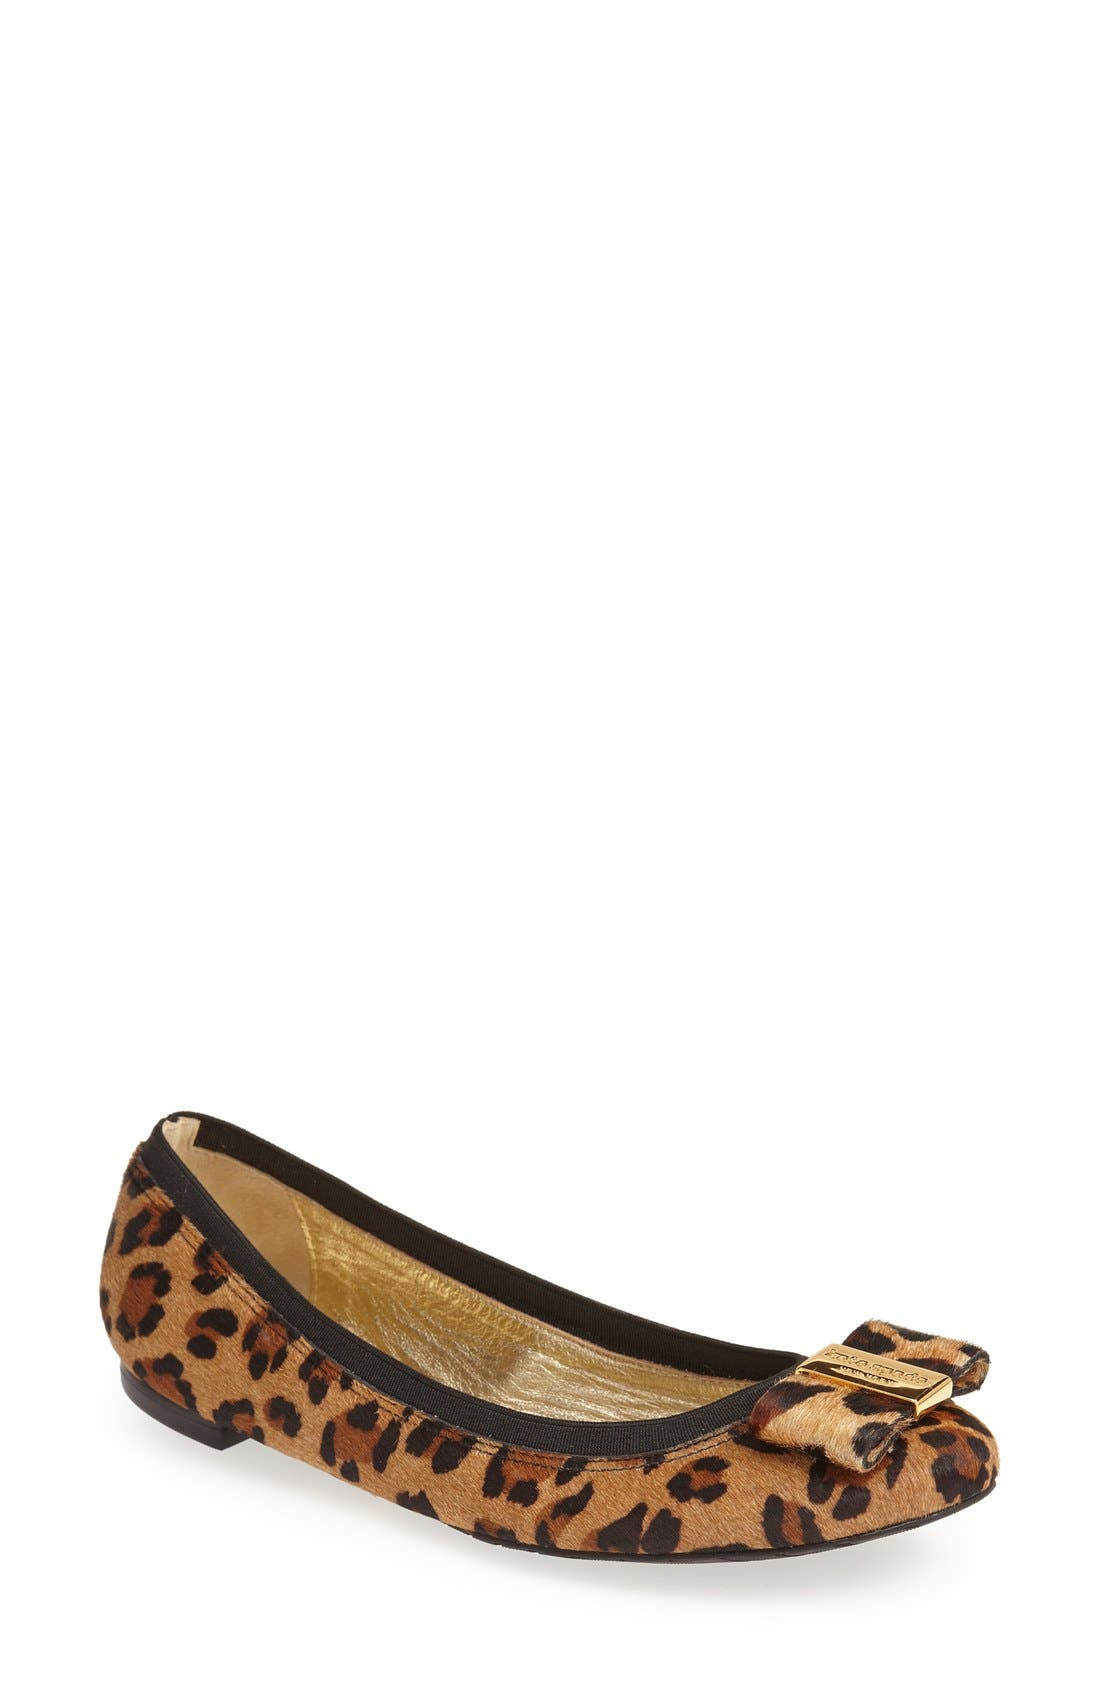 Alternate Image 1 Selected - kate spade new york 'tock' calf hair flat (Women)